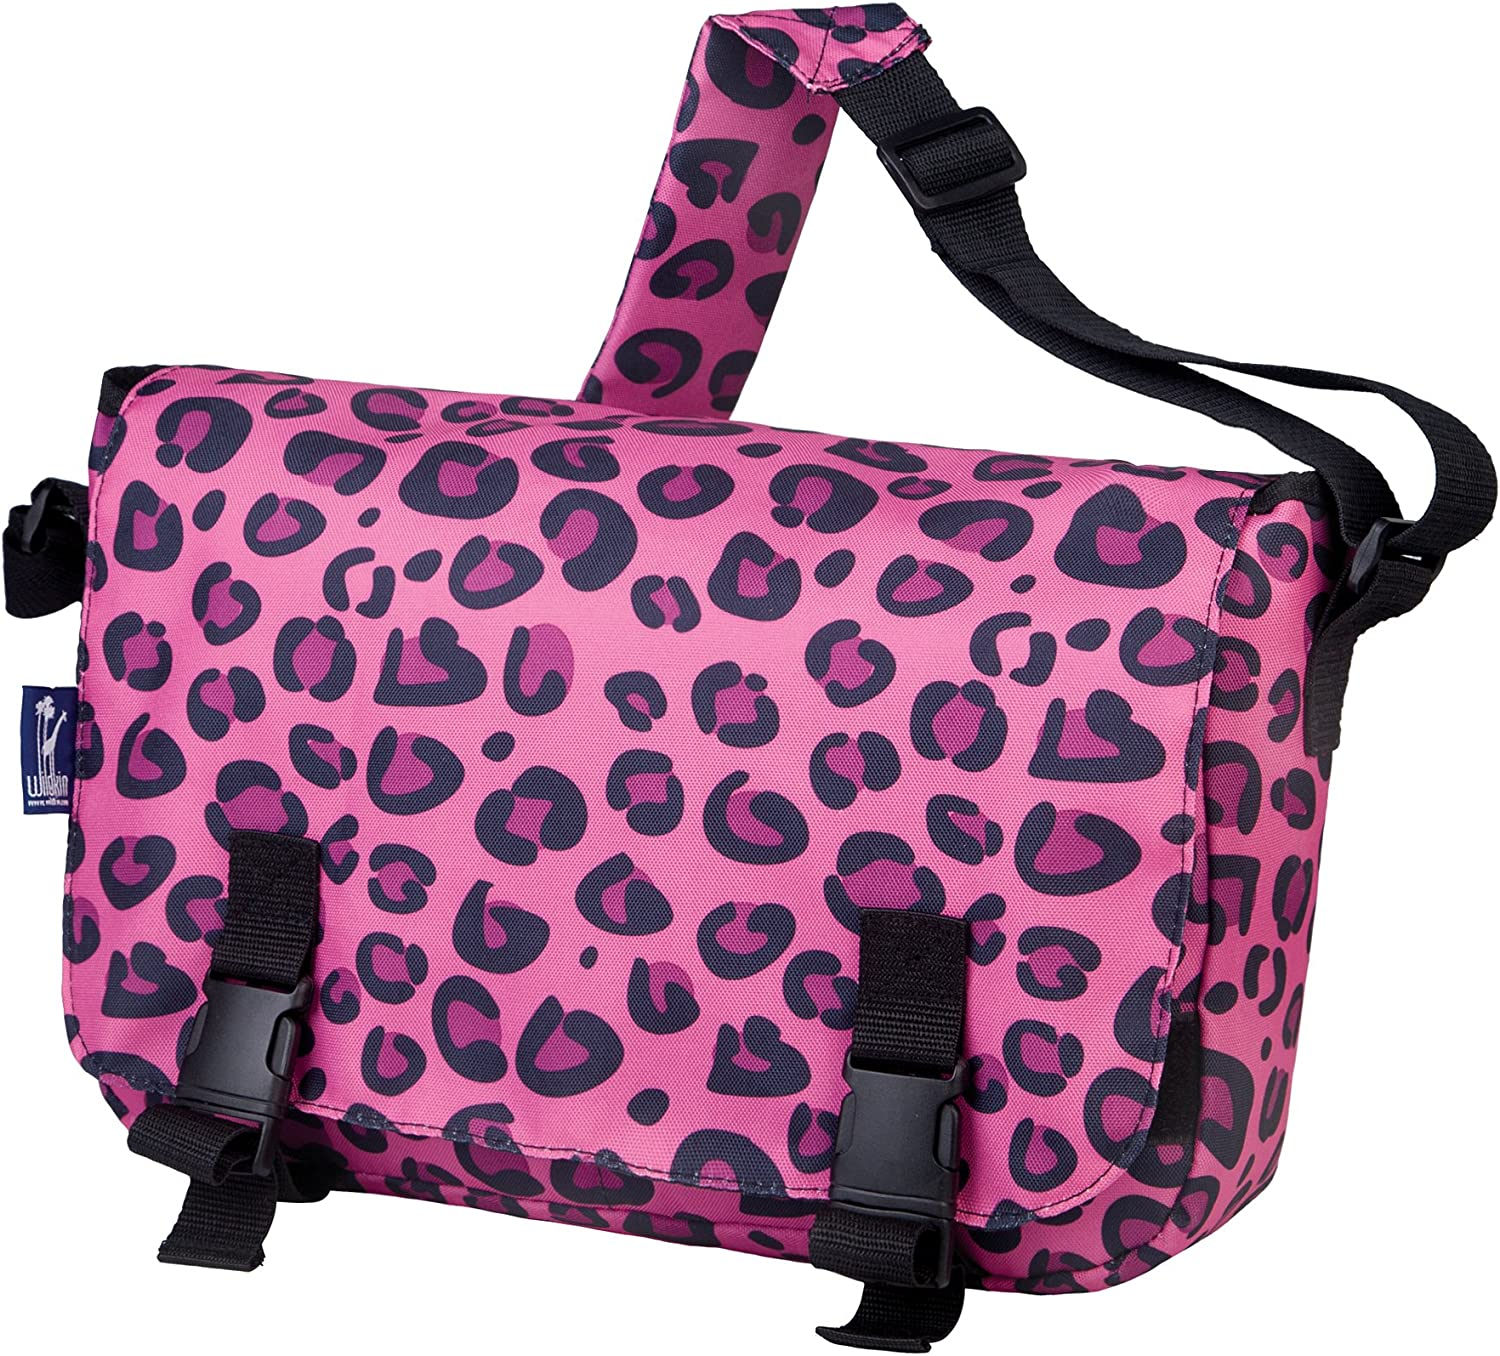 Wildkin Messenger Bag, 15 x 10 Inch Messenger Bag, Includes Interior and Exterior Pockets and Buckled Straps to Close, Ages 8+, Perfect for School, Sports, and Day Trips  Pink Leopard